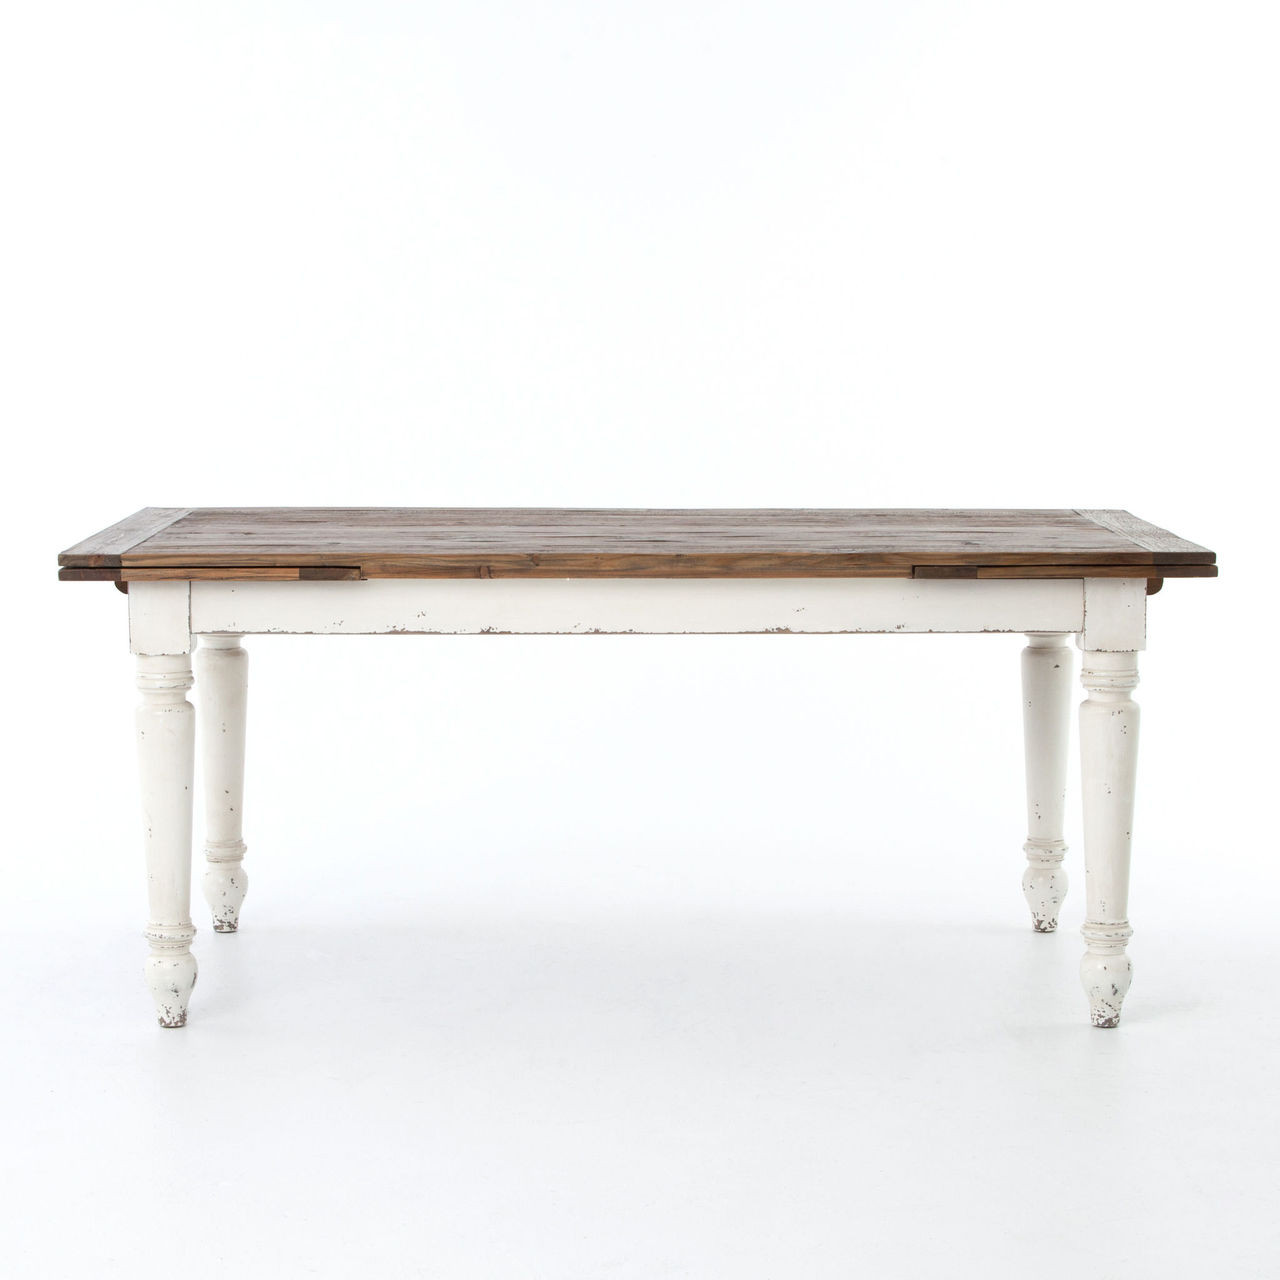 Cottage Reclaimed Wood White Expanding Dining Table 72 110 Zin Home